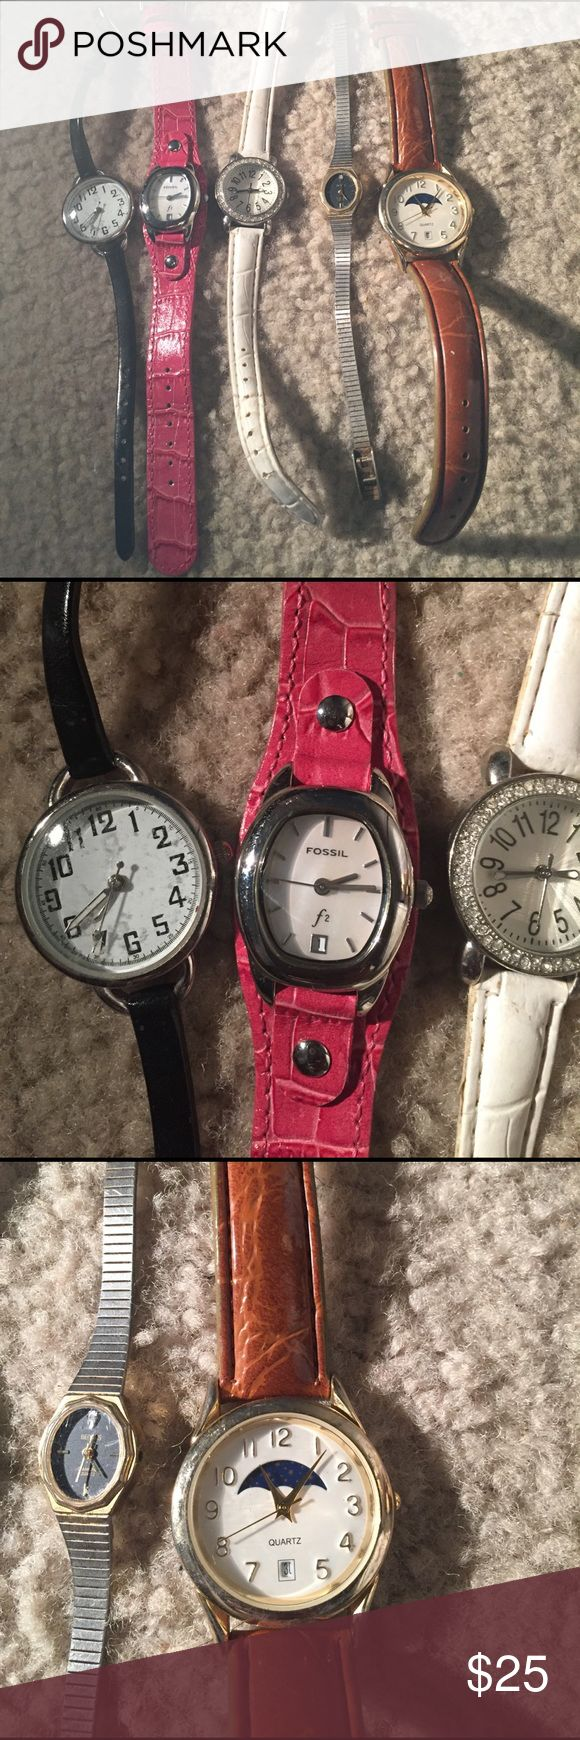 16 watches used nonworking repairable lot Condition unknown but some are in good shape some defects fossils, quartz etc Fossil Accessories Watches